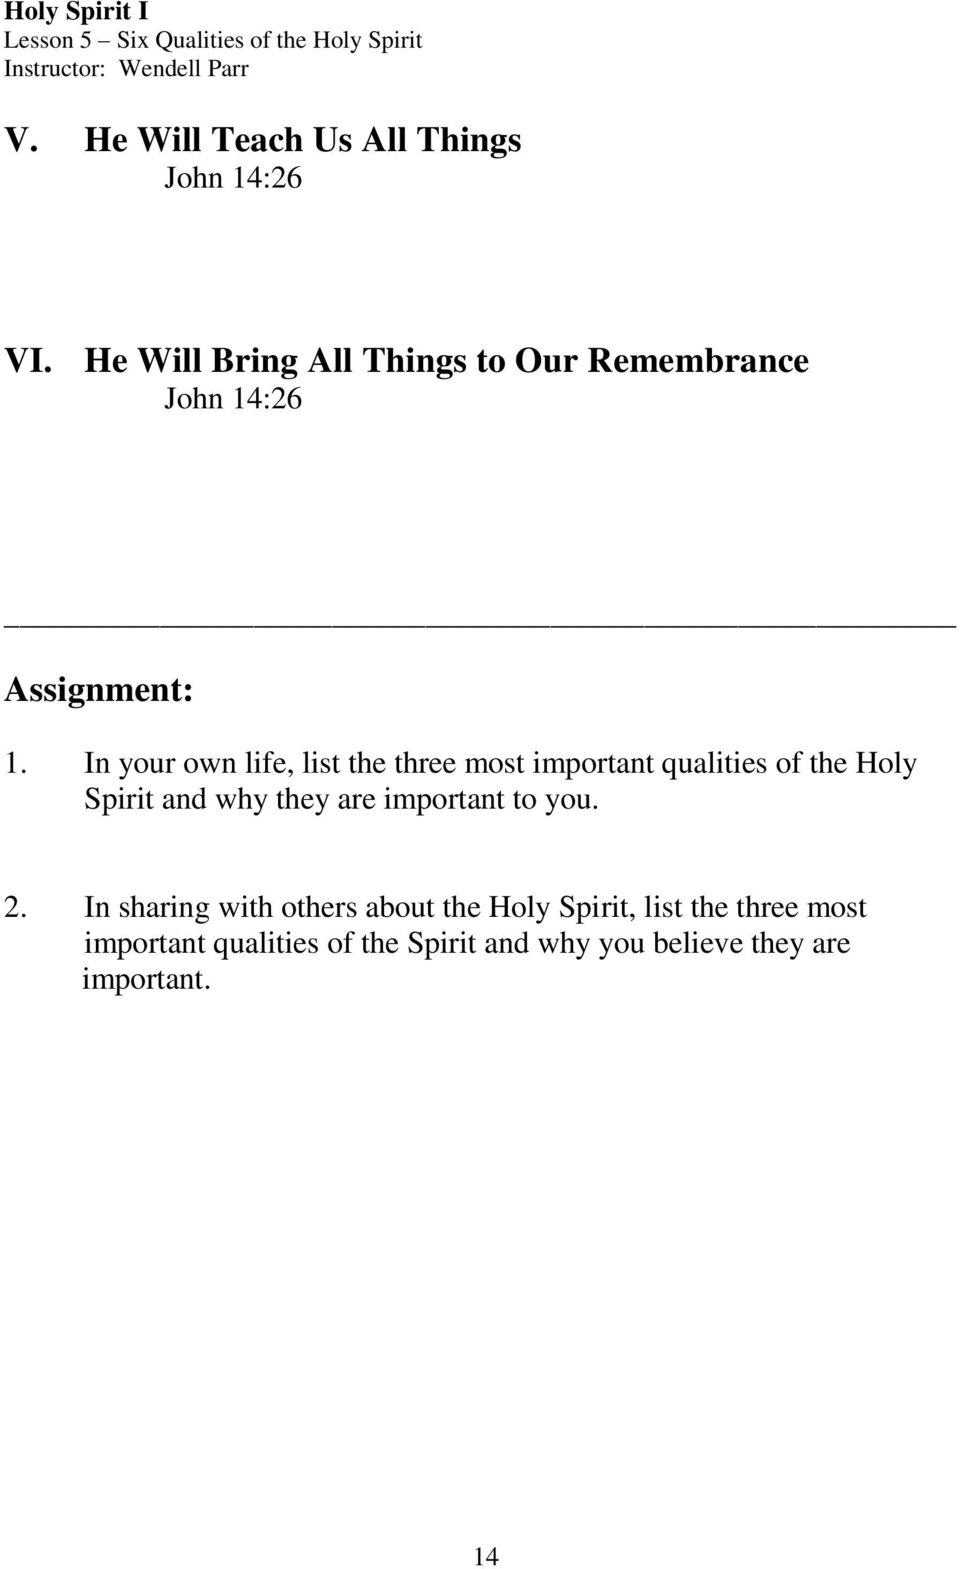 In your own life, list the three most important qualities of the Holy Spirit and why they are important